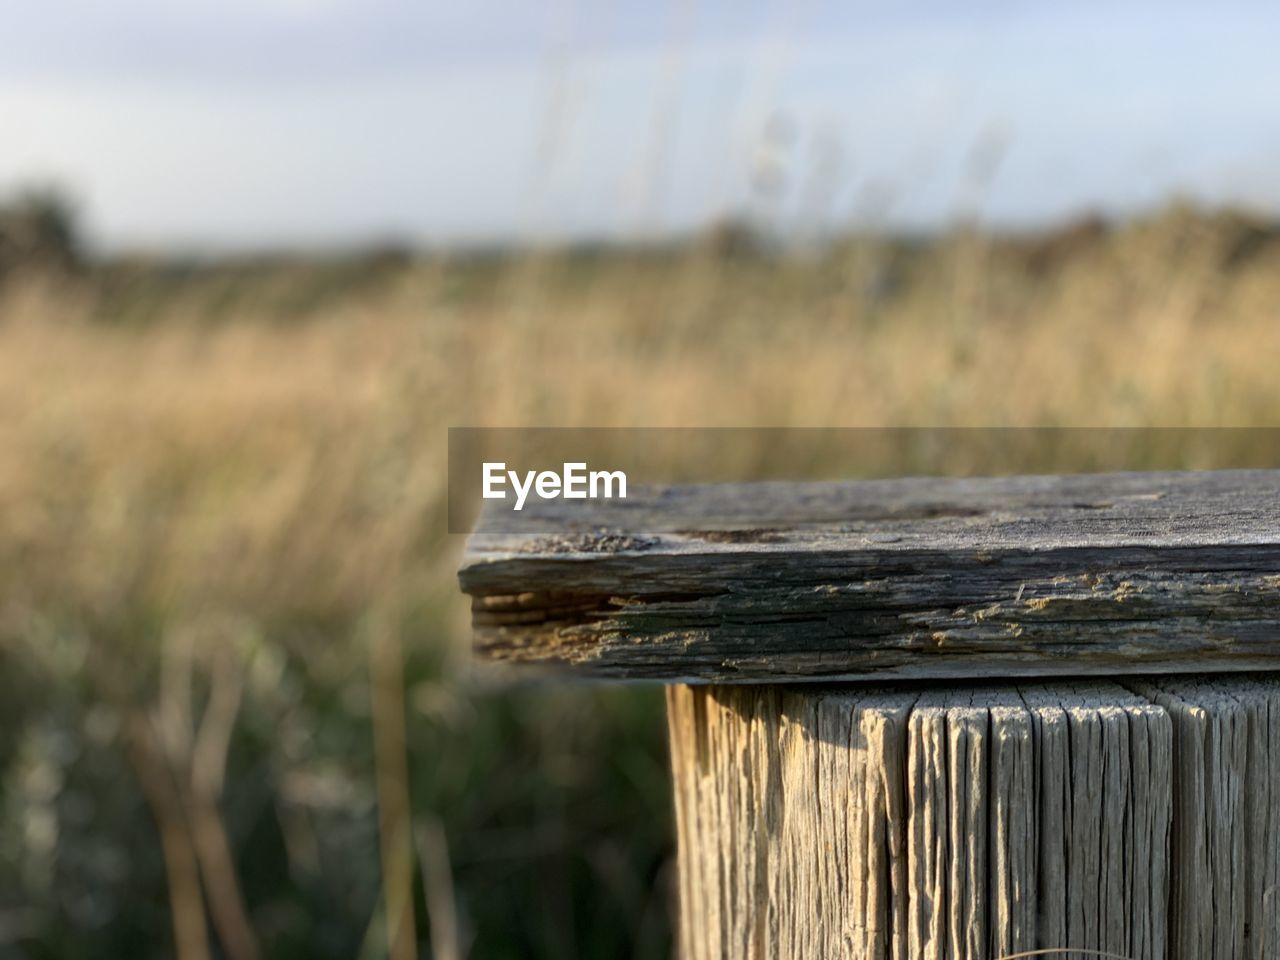 wood - material, focus on foreground, land, field, nature, close-up, day, barrier, fence, boundary, landscape, no people, sky, grass, outdoors, plant, tranquility, rural scene, agriculture, security, wooden post